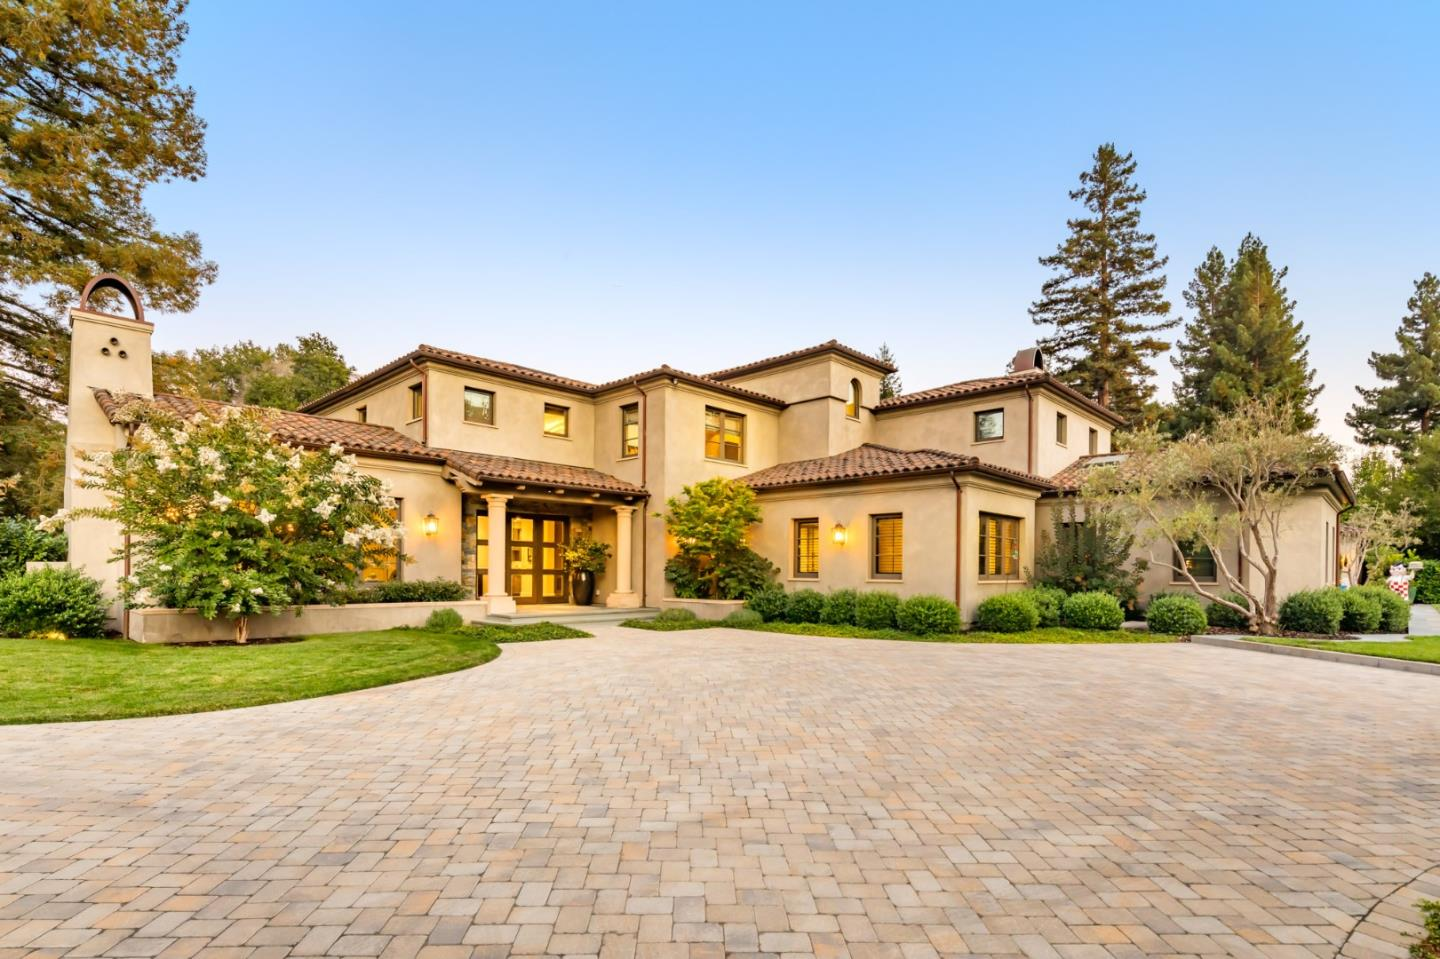 Grounds of over 1 acre provide an intimate setting for this spectacular estate, custom-built in 2017. Natural tones create a warm, welcoming ambiance that puts you at ease, with a quiet elegance that emanates throughout over 9,300 total square feet of interior space. The modern floorplan offers grand-scale formal rooms made for entertaining, plus a kitchen with top-of-the-line appliances, an office, family room, theater, wine cellar, and more. 5 bedrooms and 7 bathrooms include the detached pool house, as well as 4 en suite bedrooms in the main home highlighted by the primary suite with a spa-like bathroom. Numerous glass doors open to grounds filled with heated terraces, a fireplace, grilling station, and a lap pool. Plus, ample parking is always available thanks to a gated motor court and 4-car garage. Just moments to downtown Menlo Park, this estate is also convenient to downtown Palo Alto and Stanford University, with the venture capital firms along Sand Hill Road close at hand.